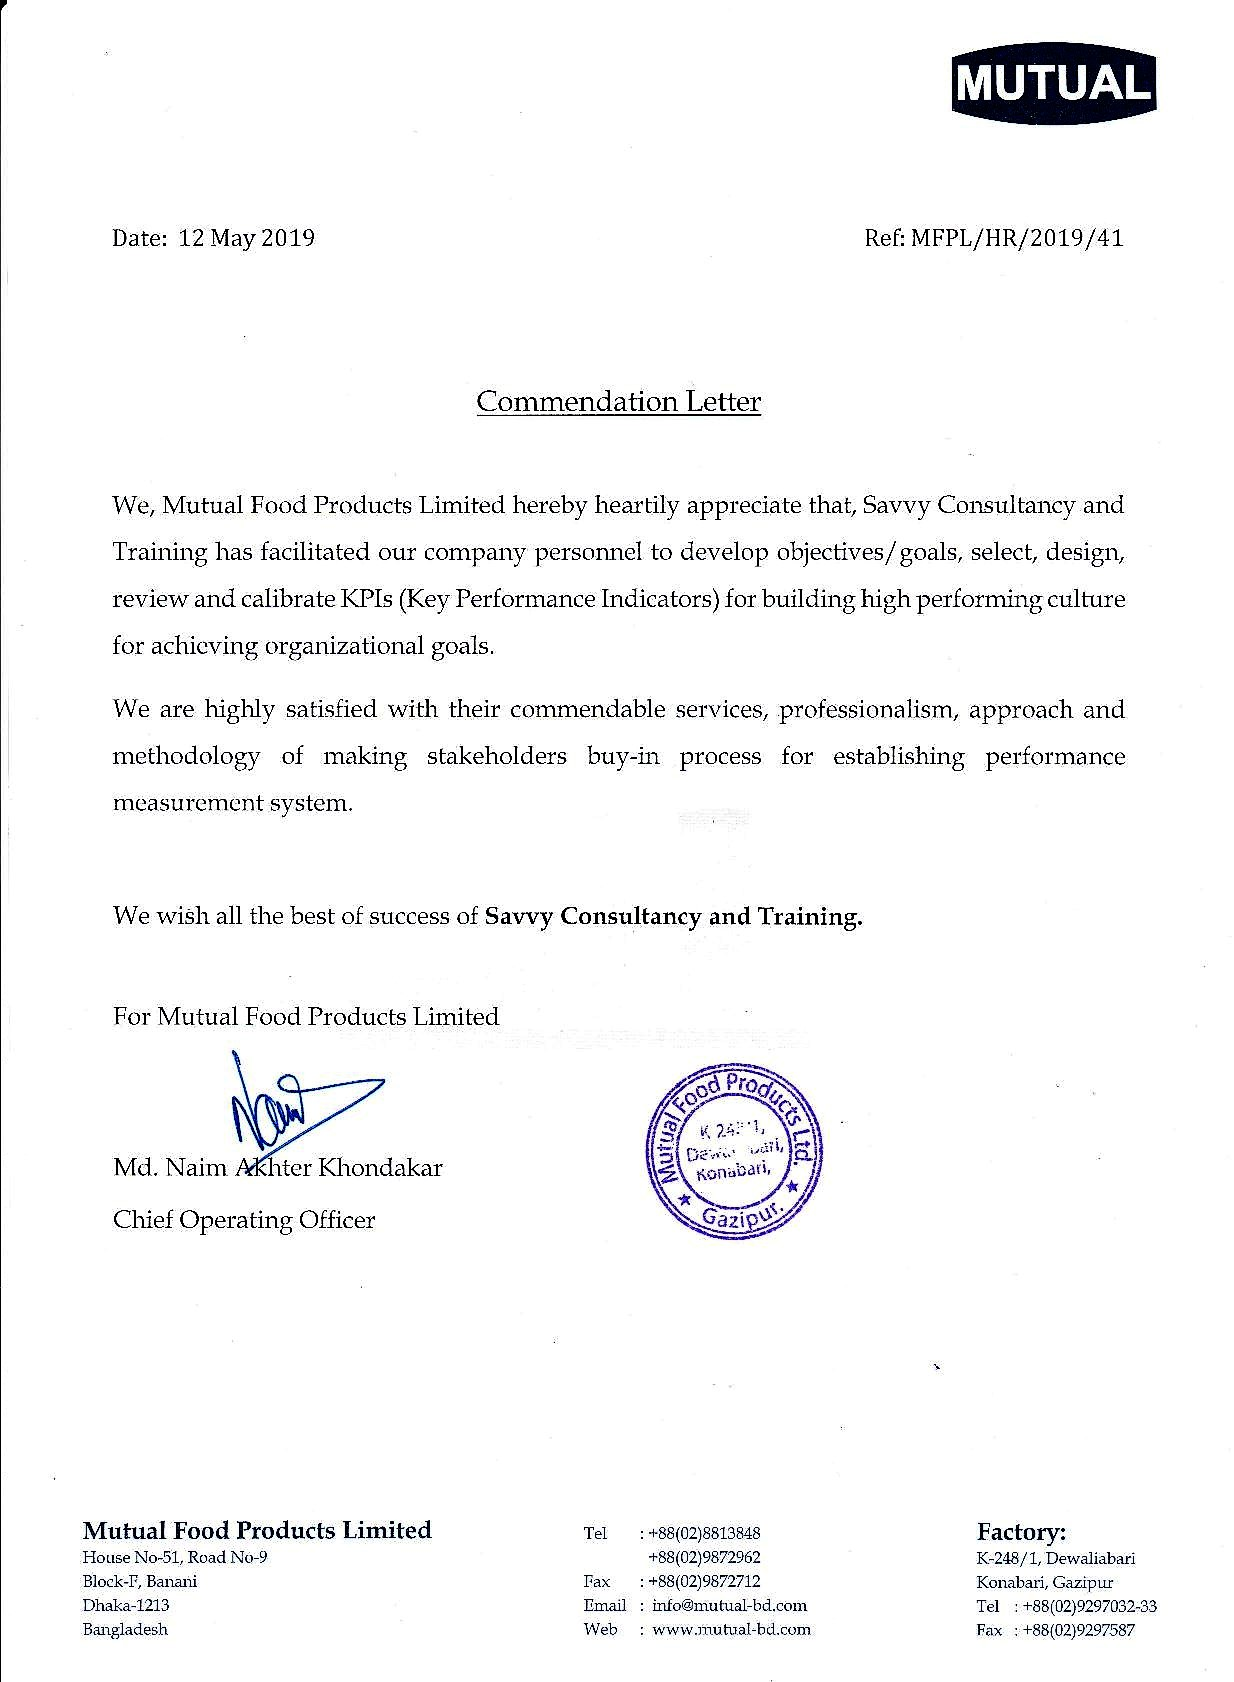 Commendation letter-Mutual Foods